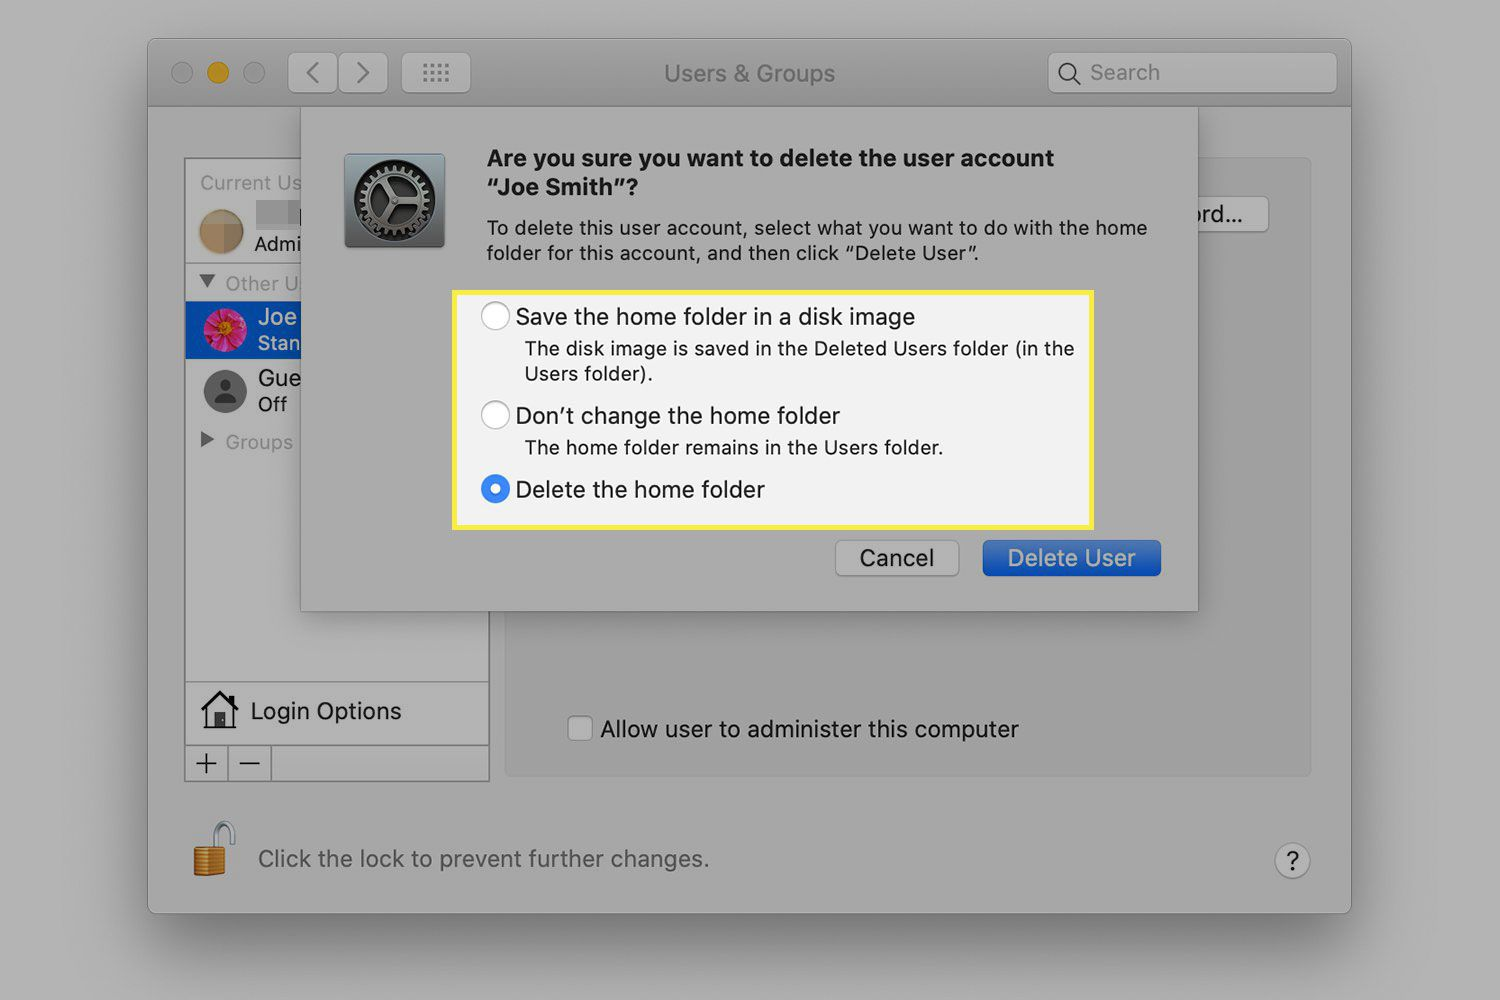 A screenshot of the Delete User confirmation window in macOS with the options highlighted